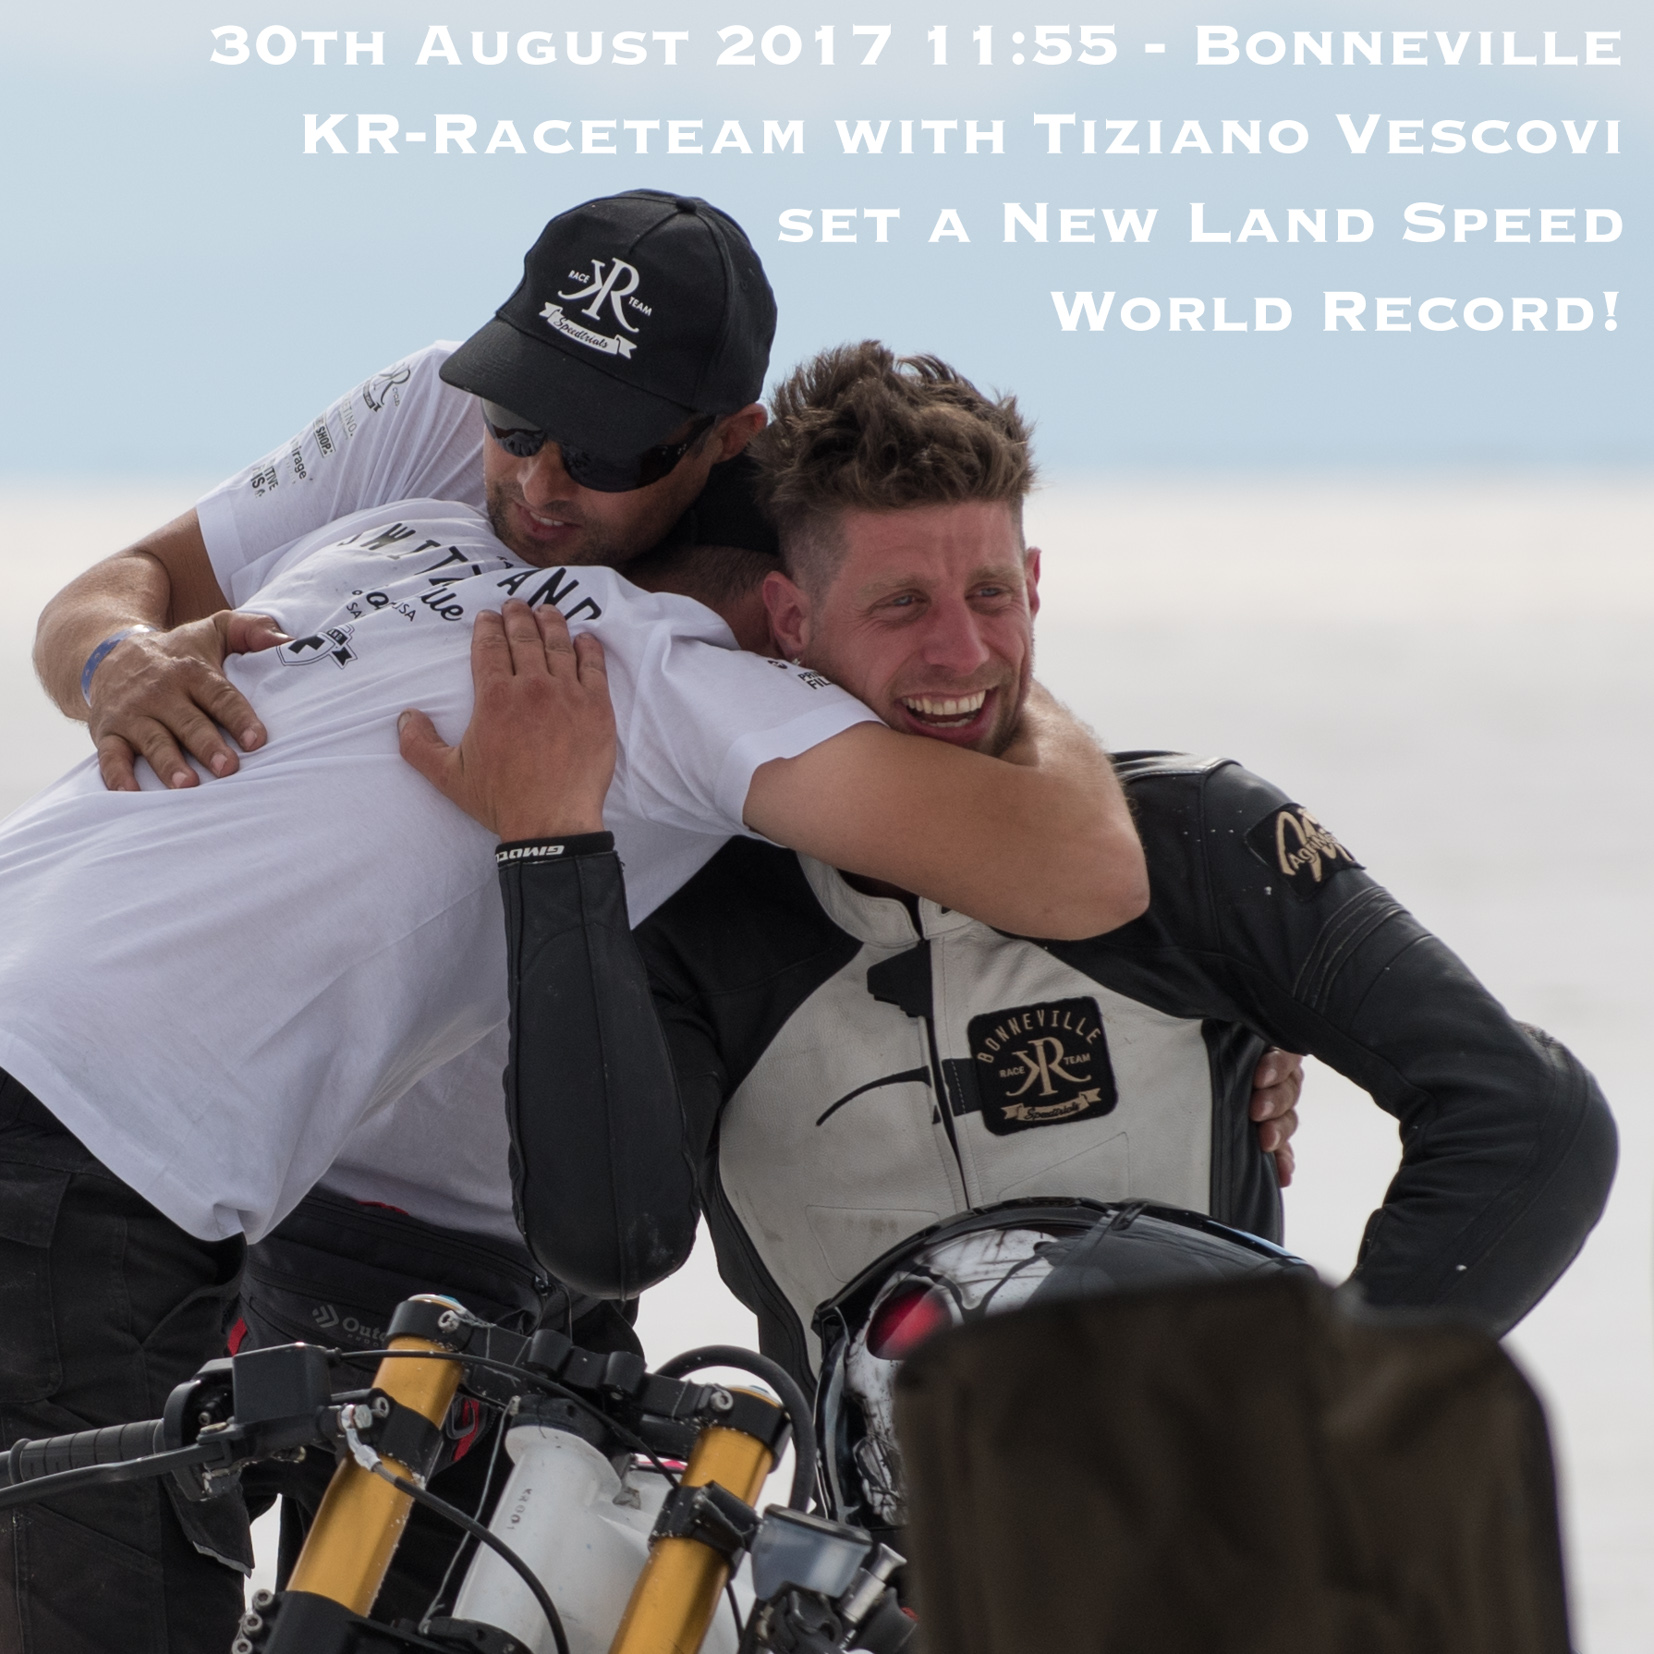 30.08.2017 - 11:55 - Bonneville - New Land Speed World Record! 167.05 MPH / 268.85 KPH